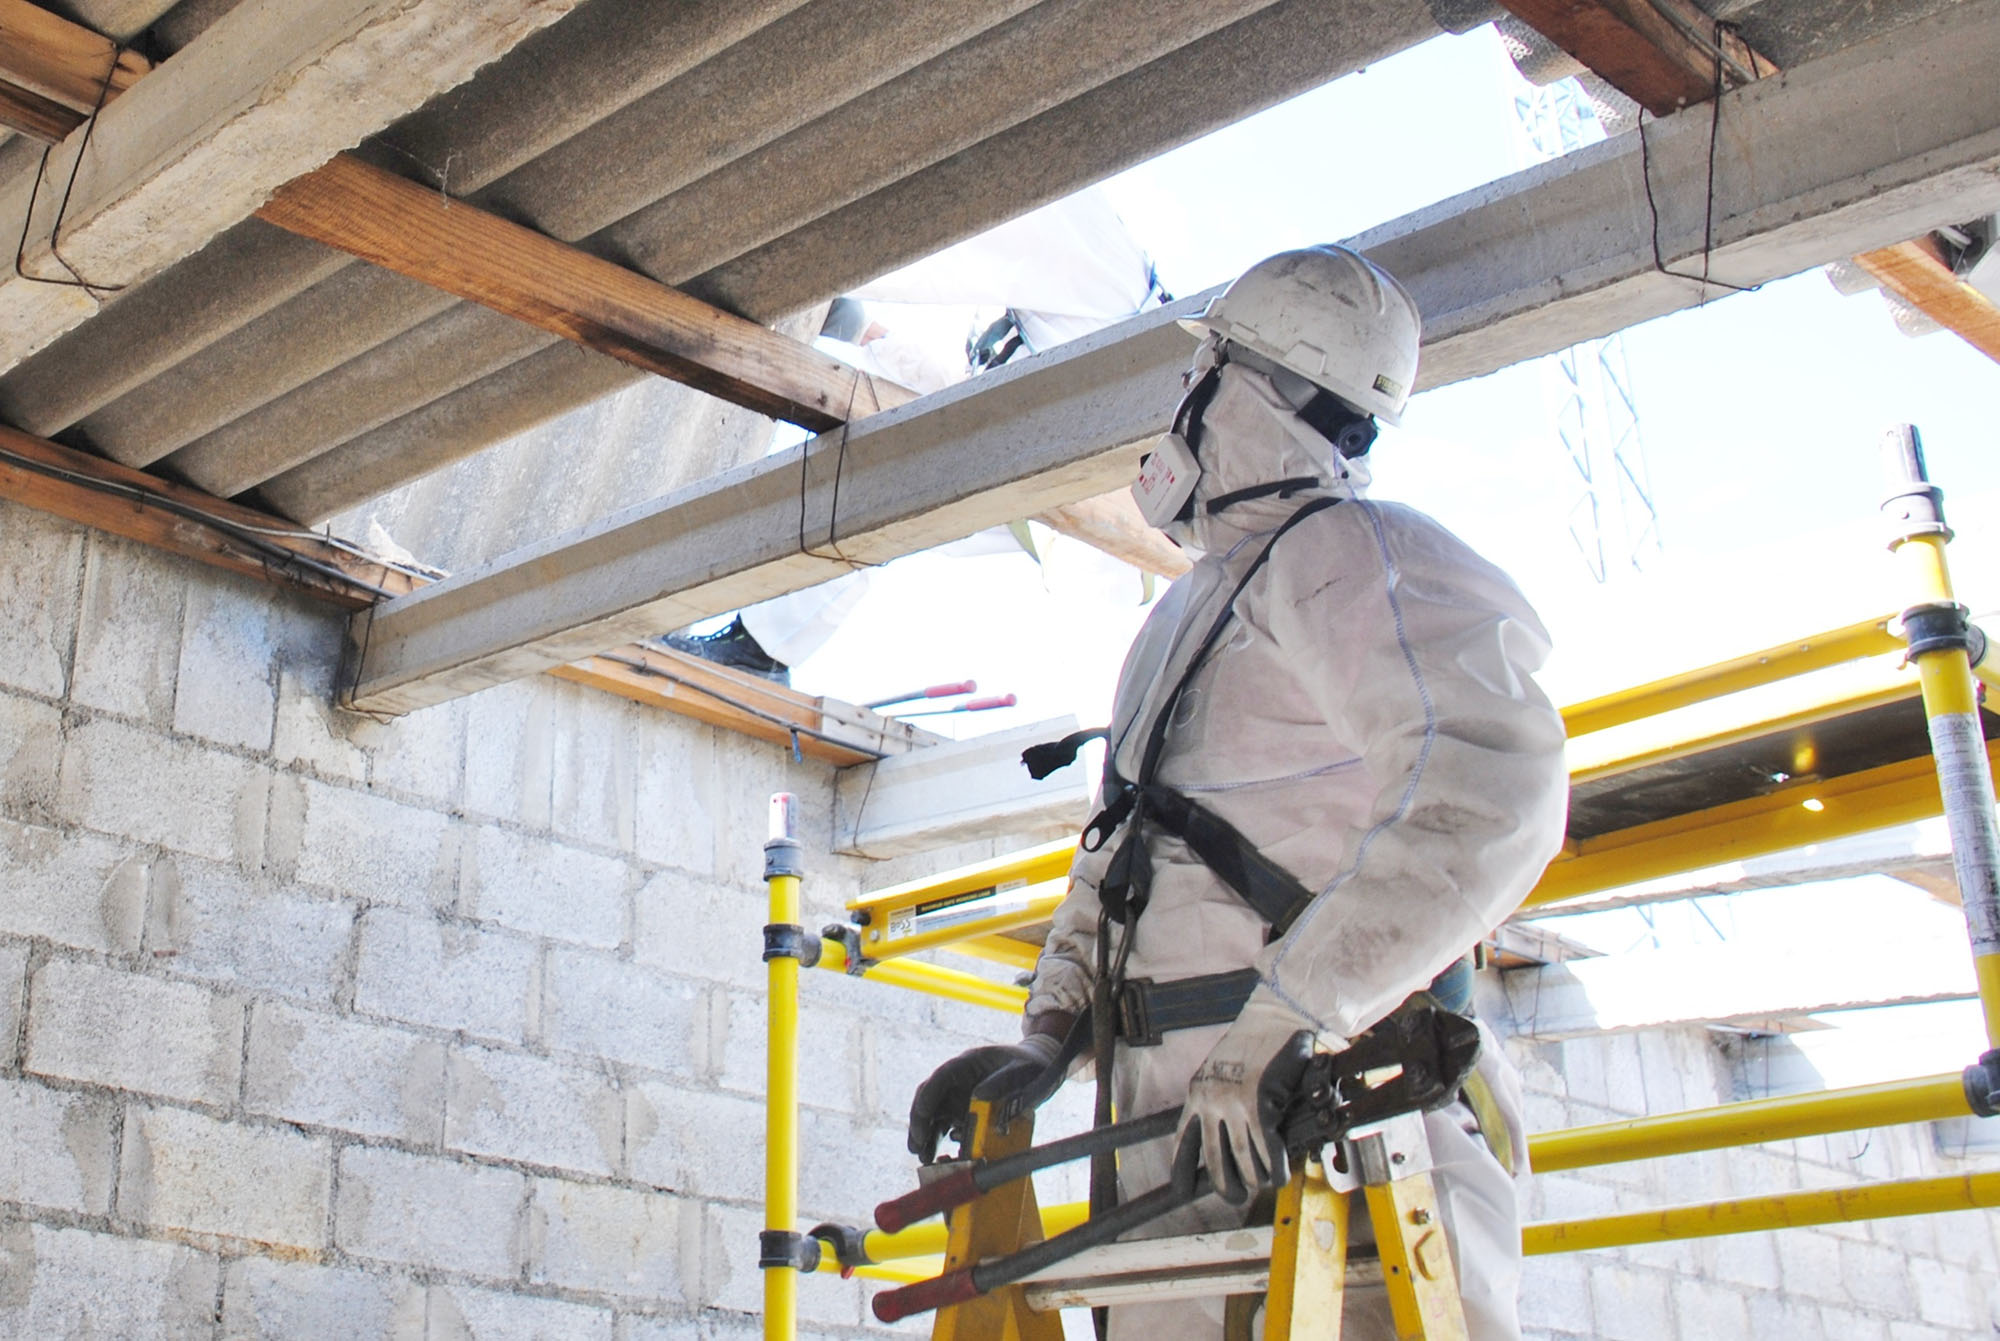 Construction worker handling asbestos removal in a building with PPE